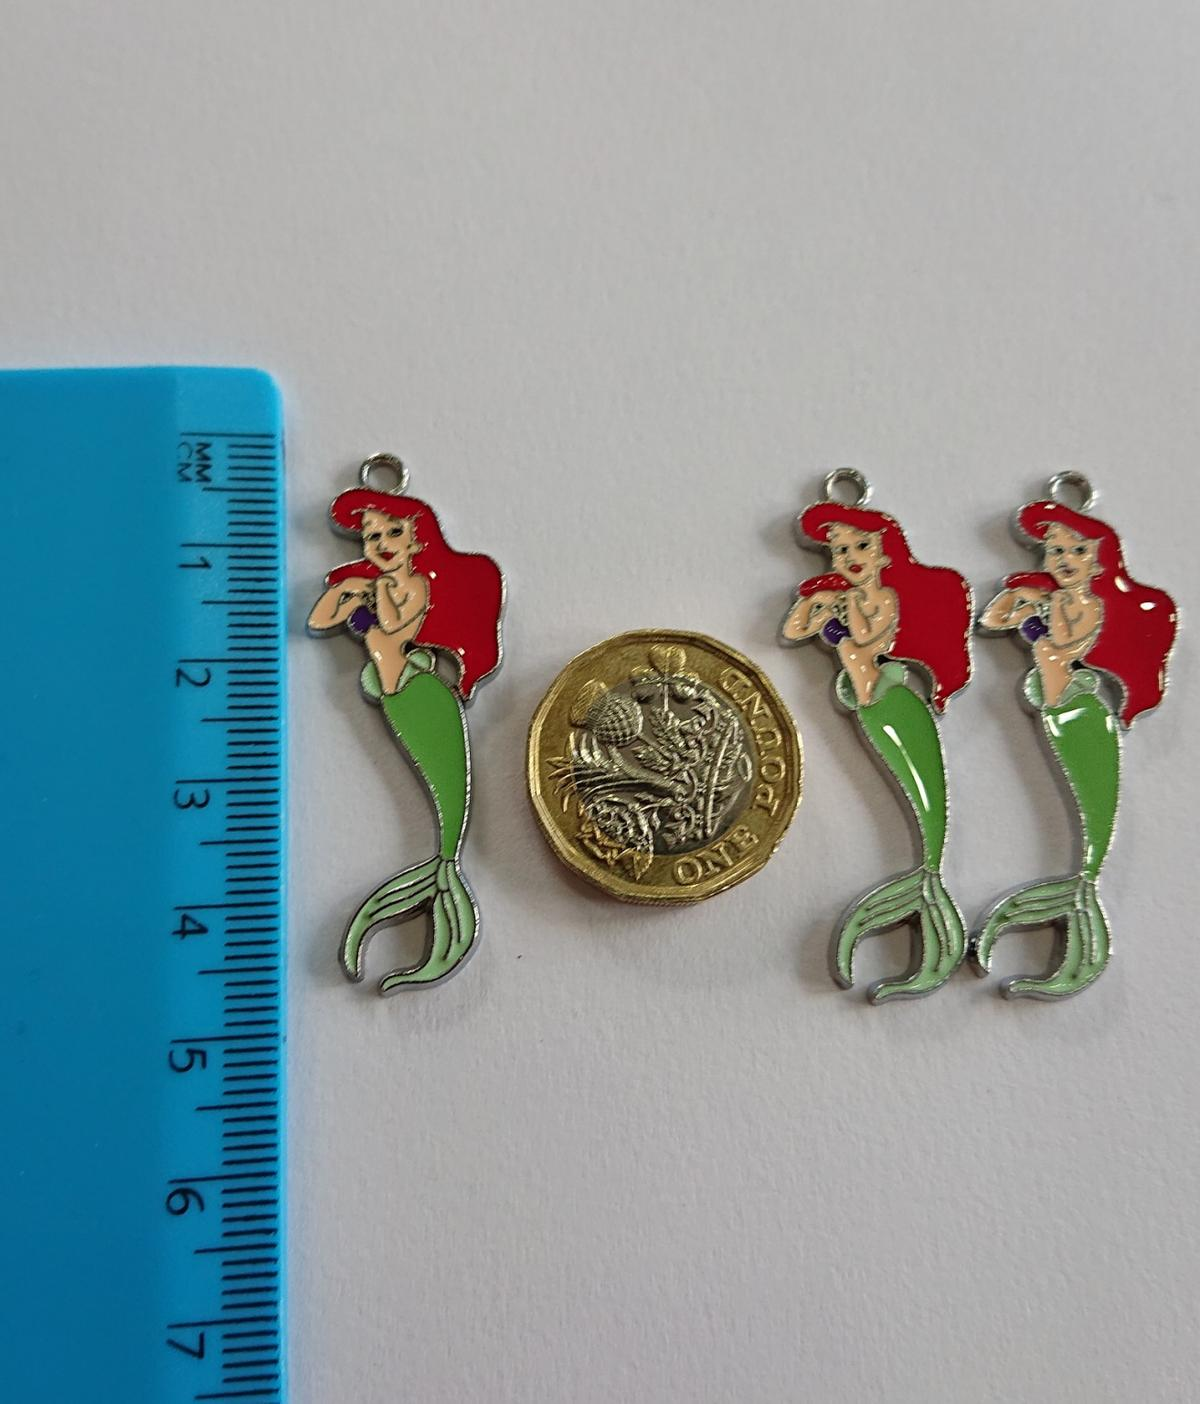 Silver Tone Enamel charms Shown Next To A Ruler & a pound coin for size Thank You for Looking Cheryl